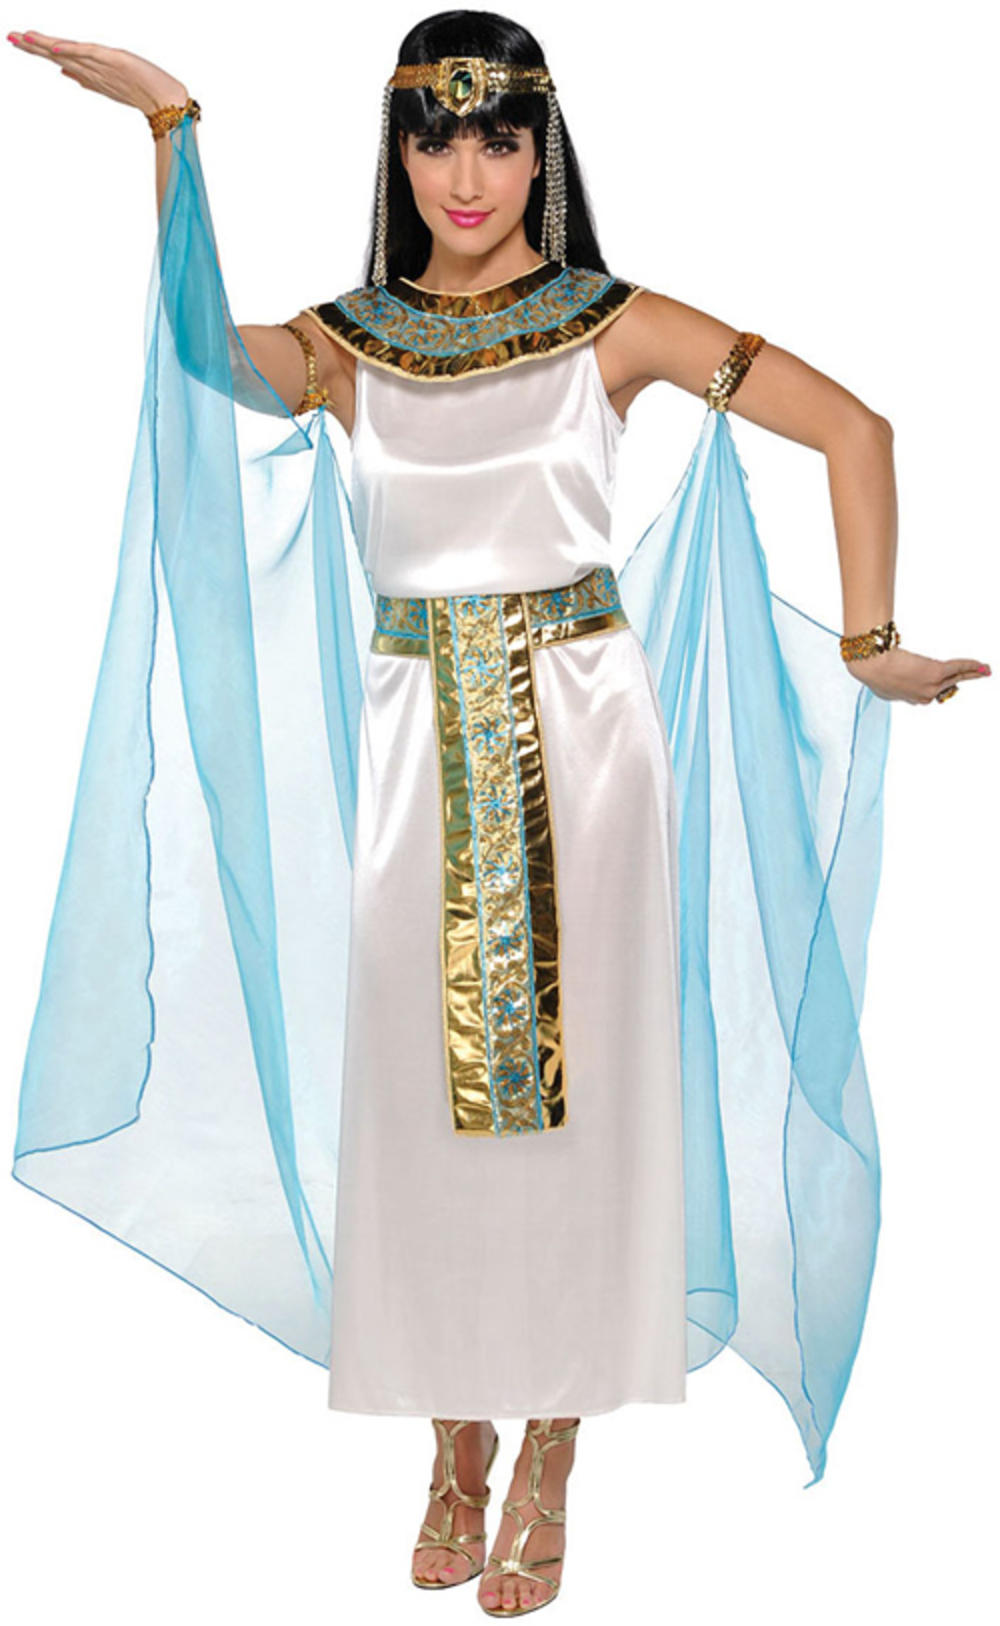 Cleopatra Ladies Fancy Dress Egyptian Queen Goddess Adults Historical Costume